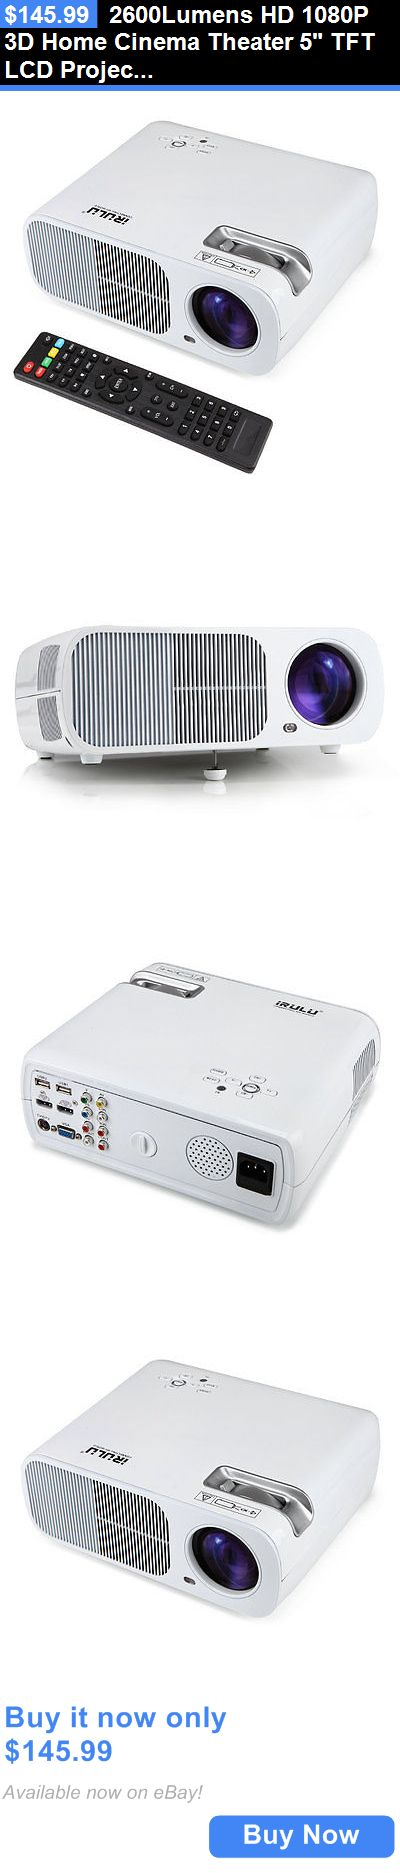 Home Audio: 2600Lumens Hd 1080P 3D Home Cinema Theater 5 Tft Lcd Projector Hdmi Usb Sd Tv BUY IT NOW ONLY: $145.99